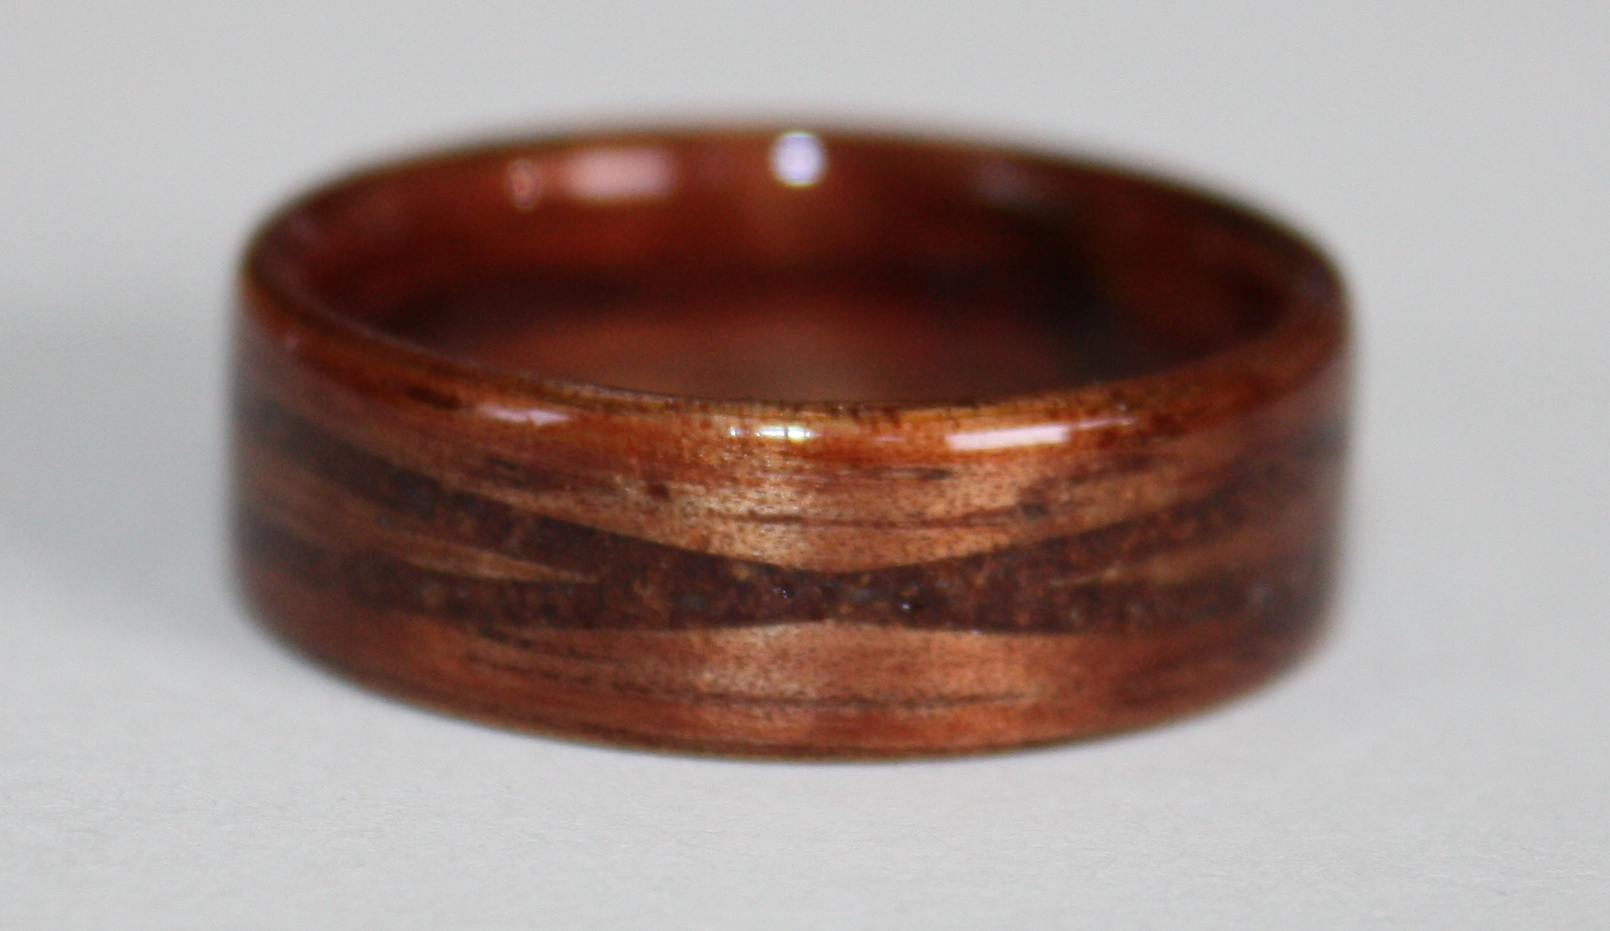 Hawaiian Koa wood ring with offset bands